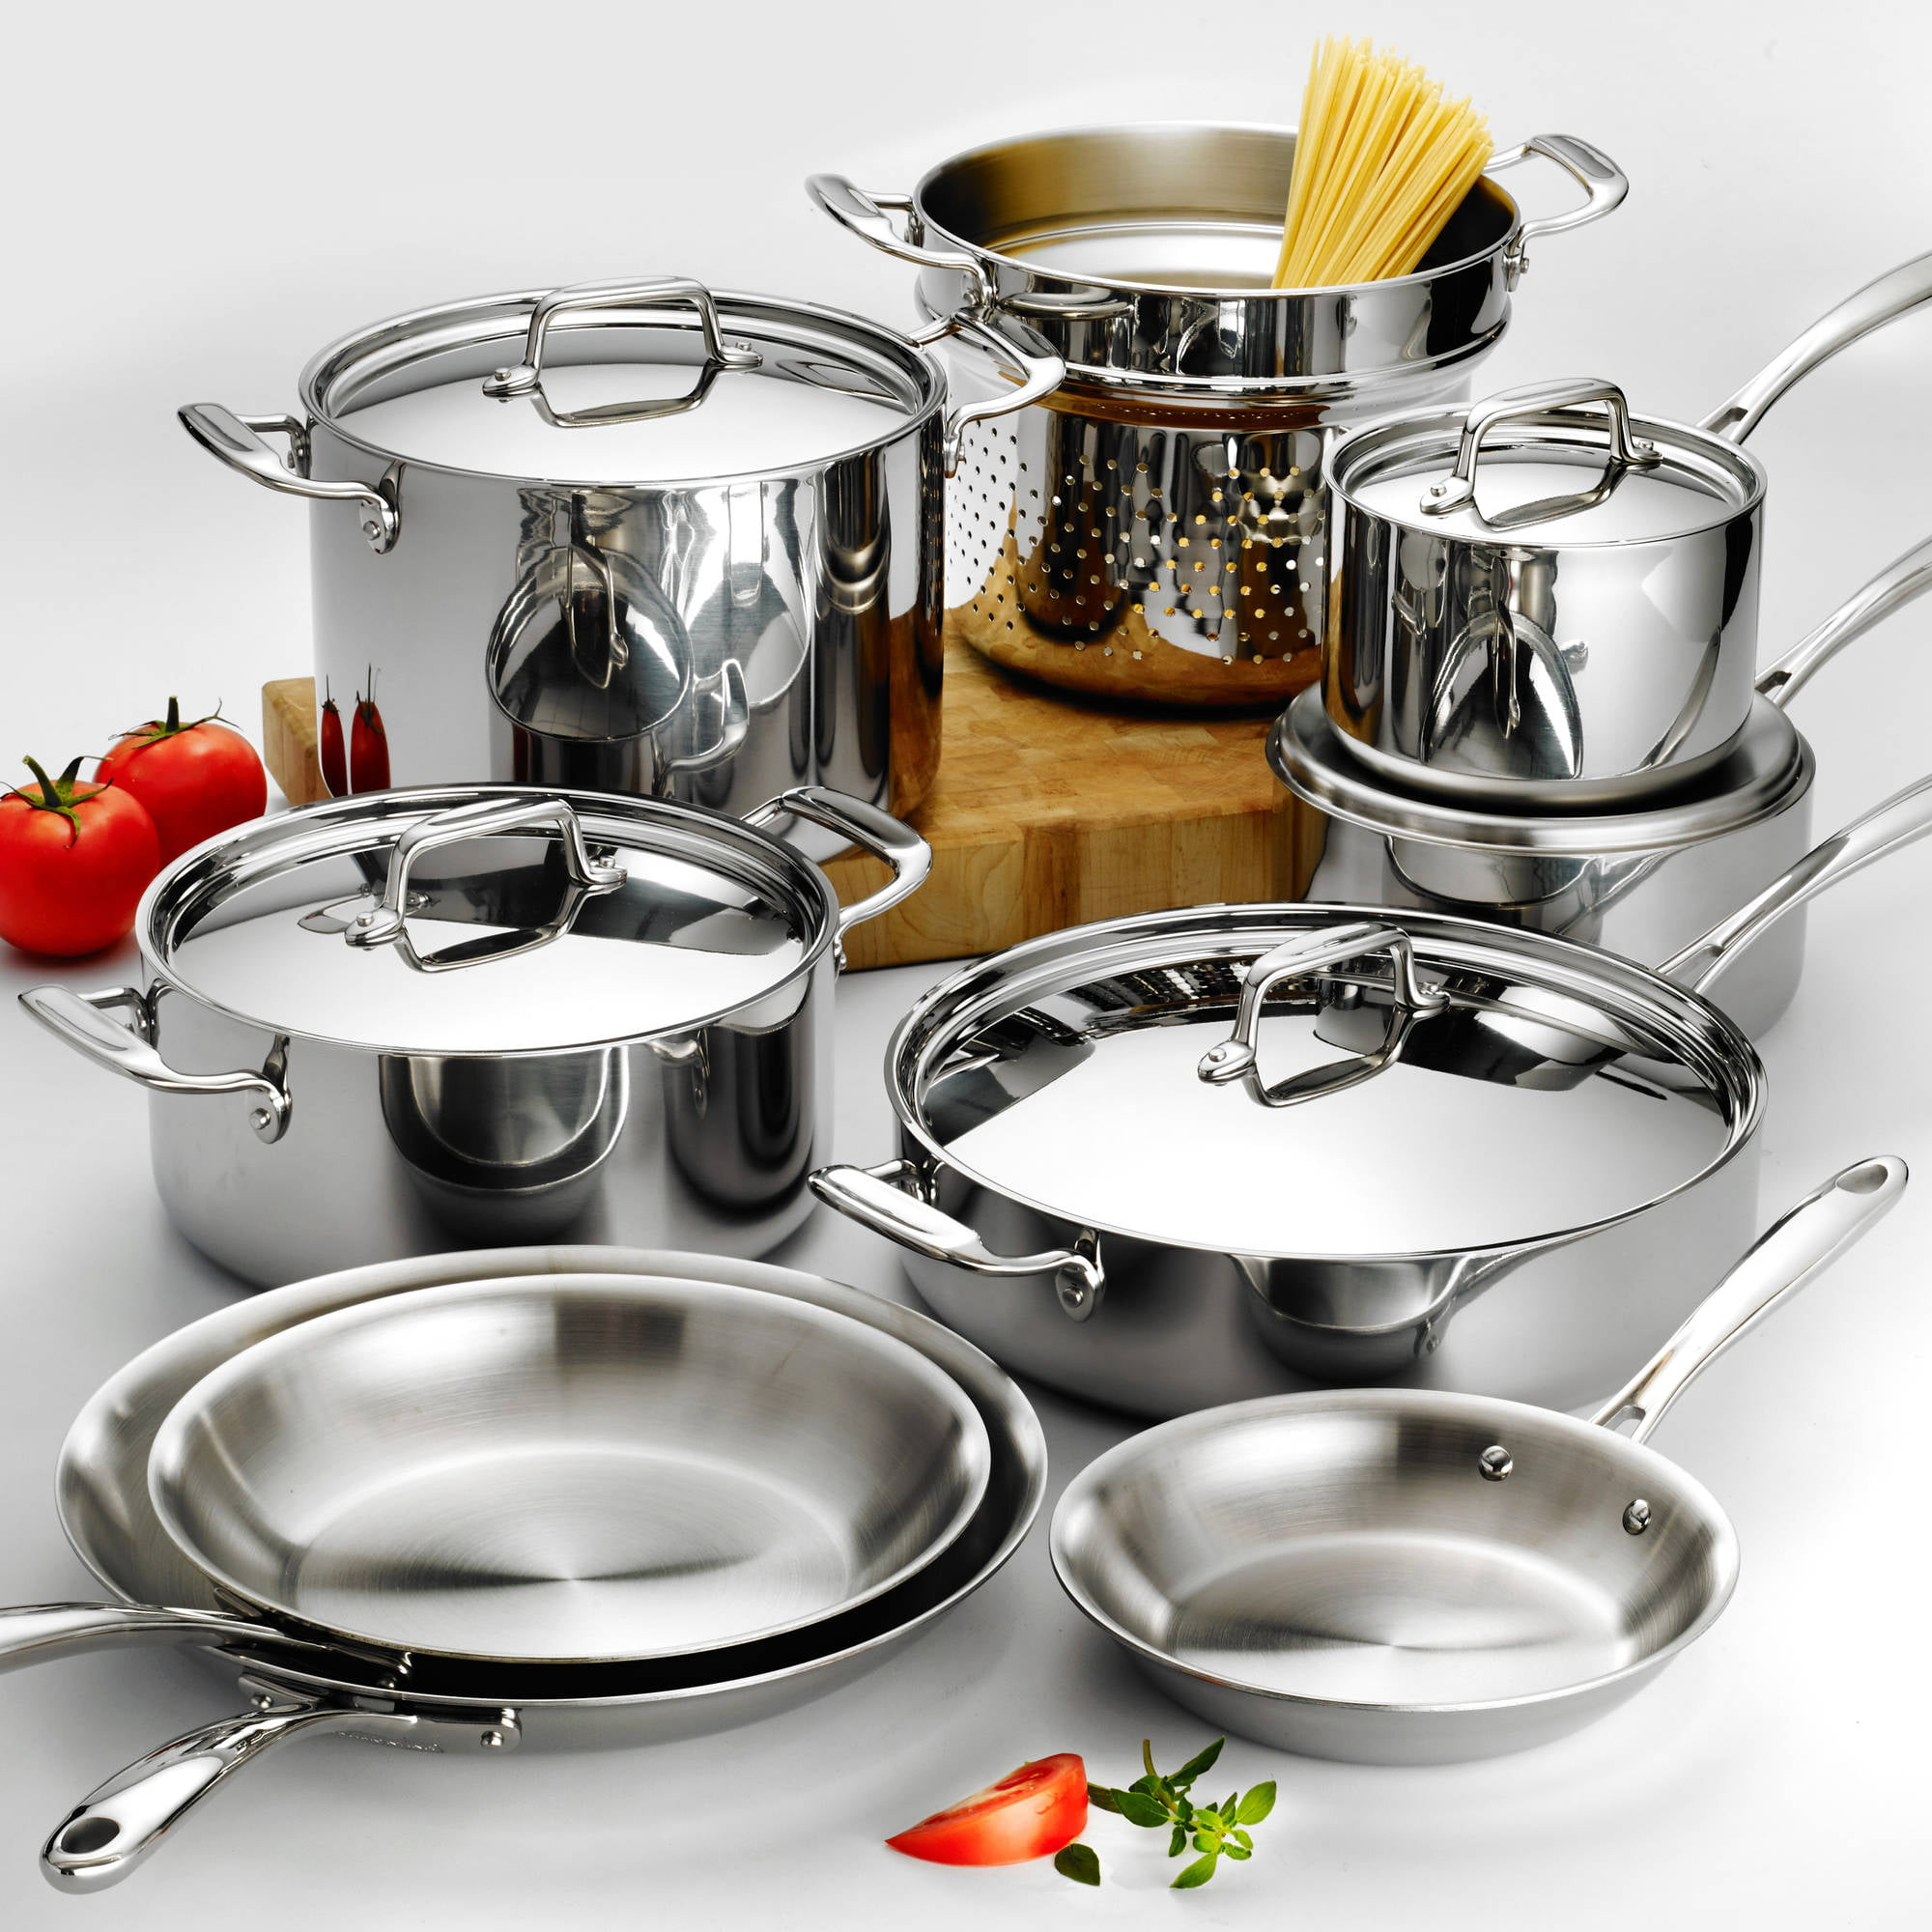 Click here to buy Tramontina 14-Piece Stainless Steel Tri-Ply Clad Cookware Set by Tramontina.